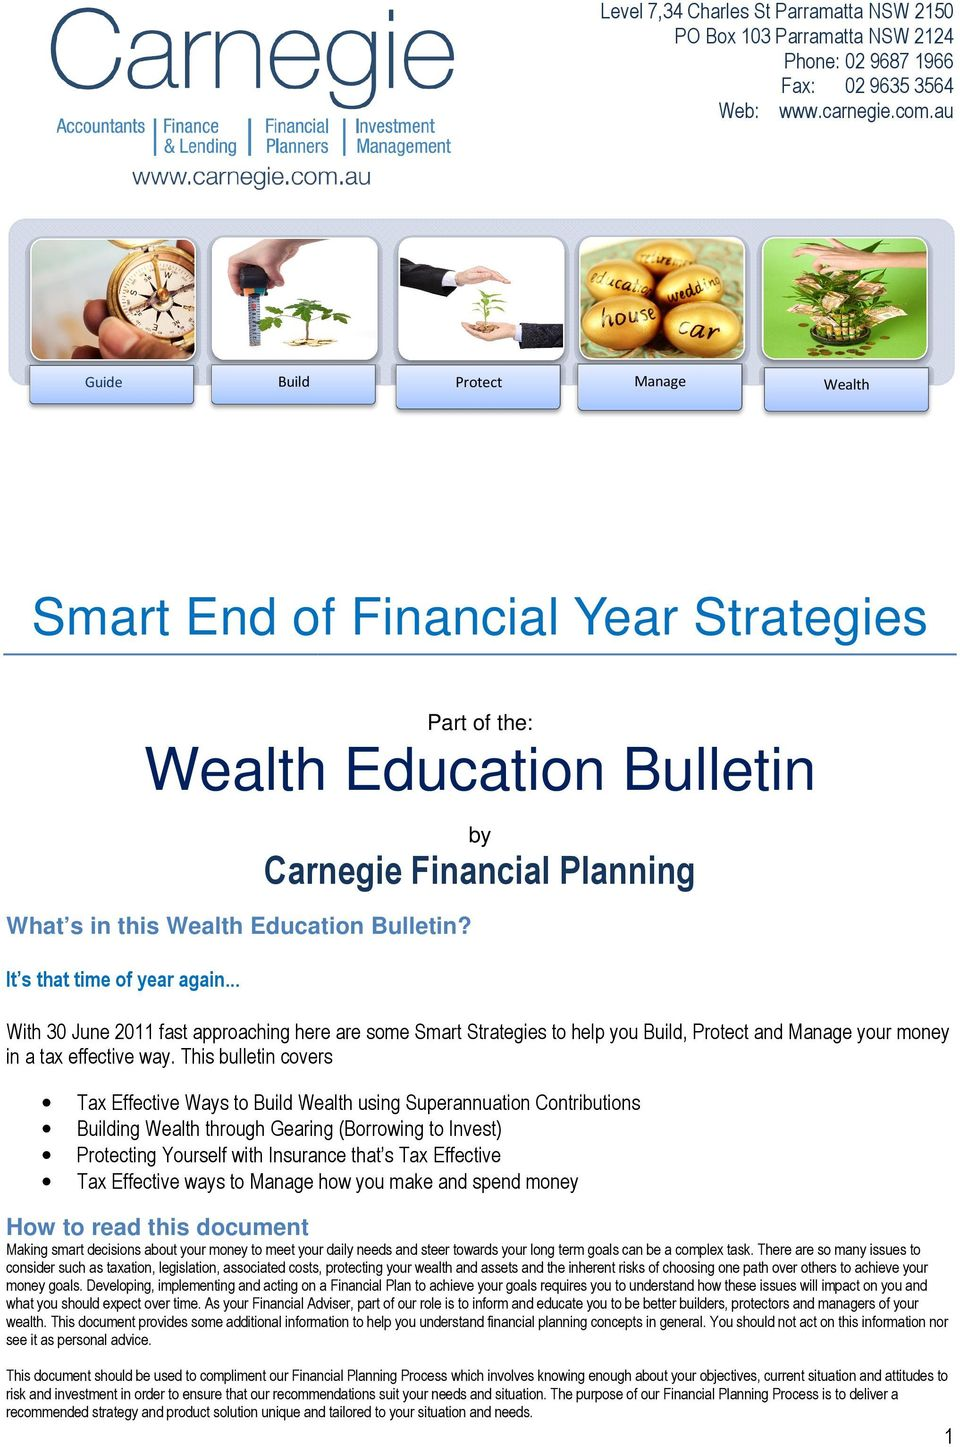 It s that time of year again... With 30 June 2011 fast approaching here are some Smart Strategies to help you Build, Protect and Manage your money in a tax effective way.